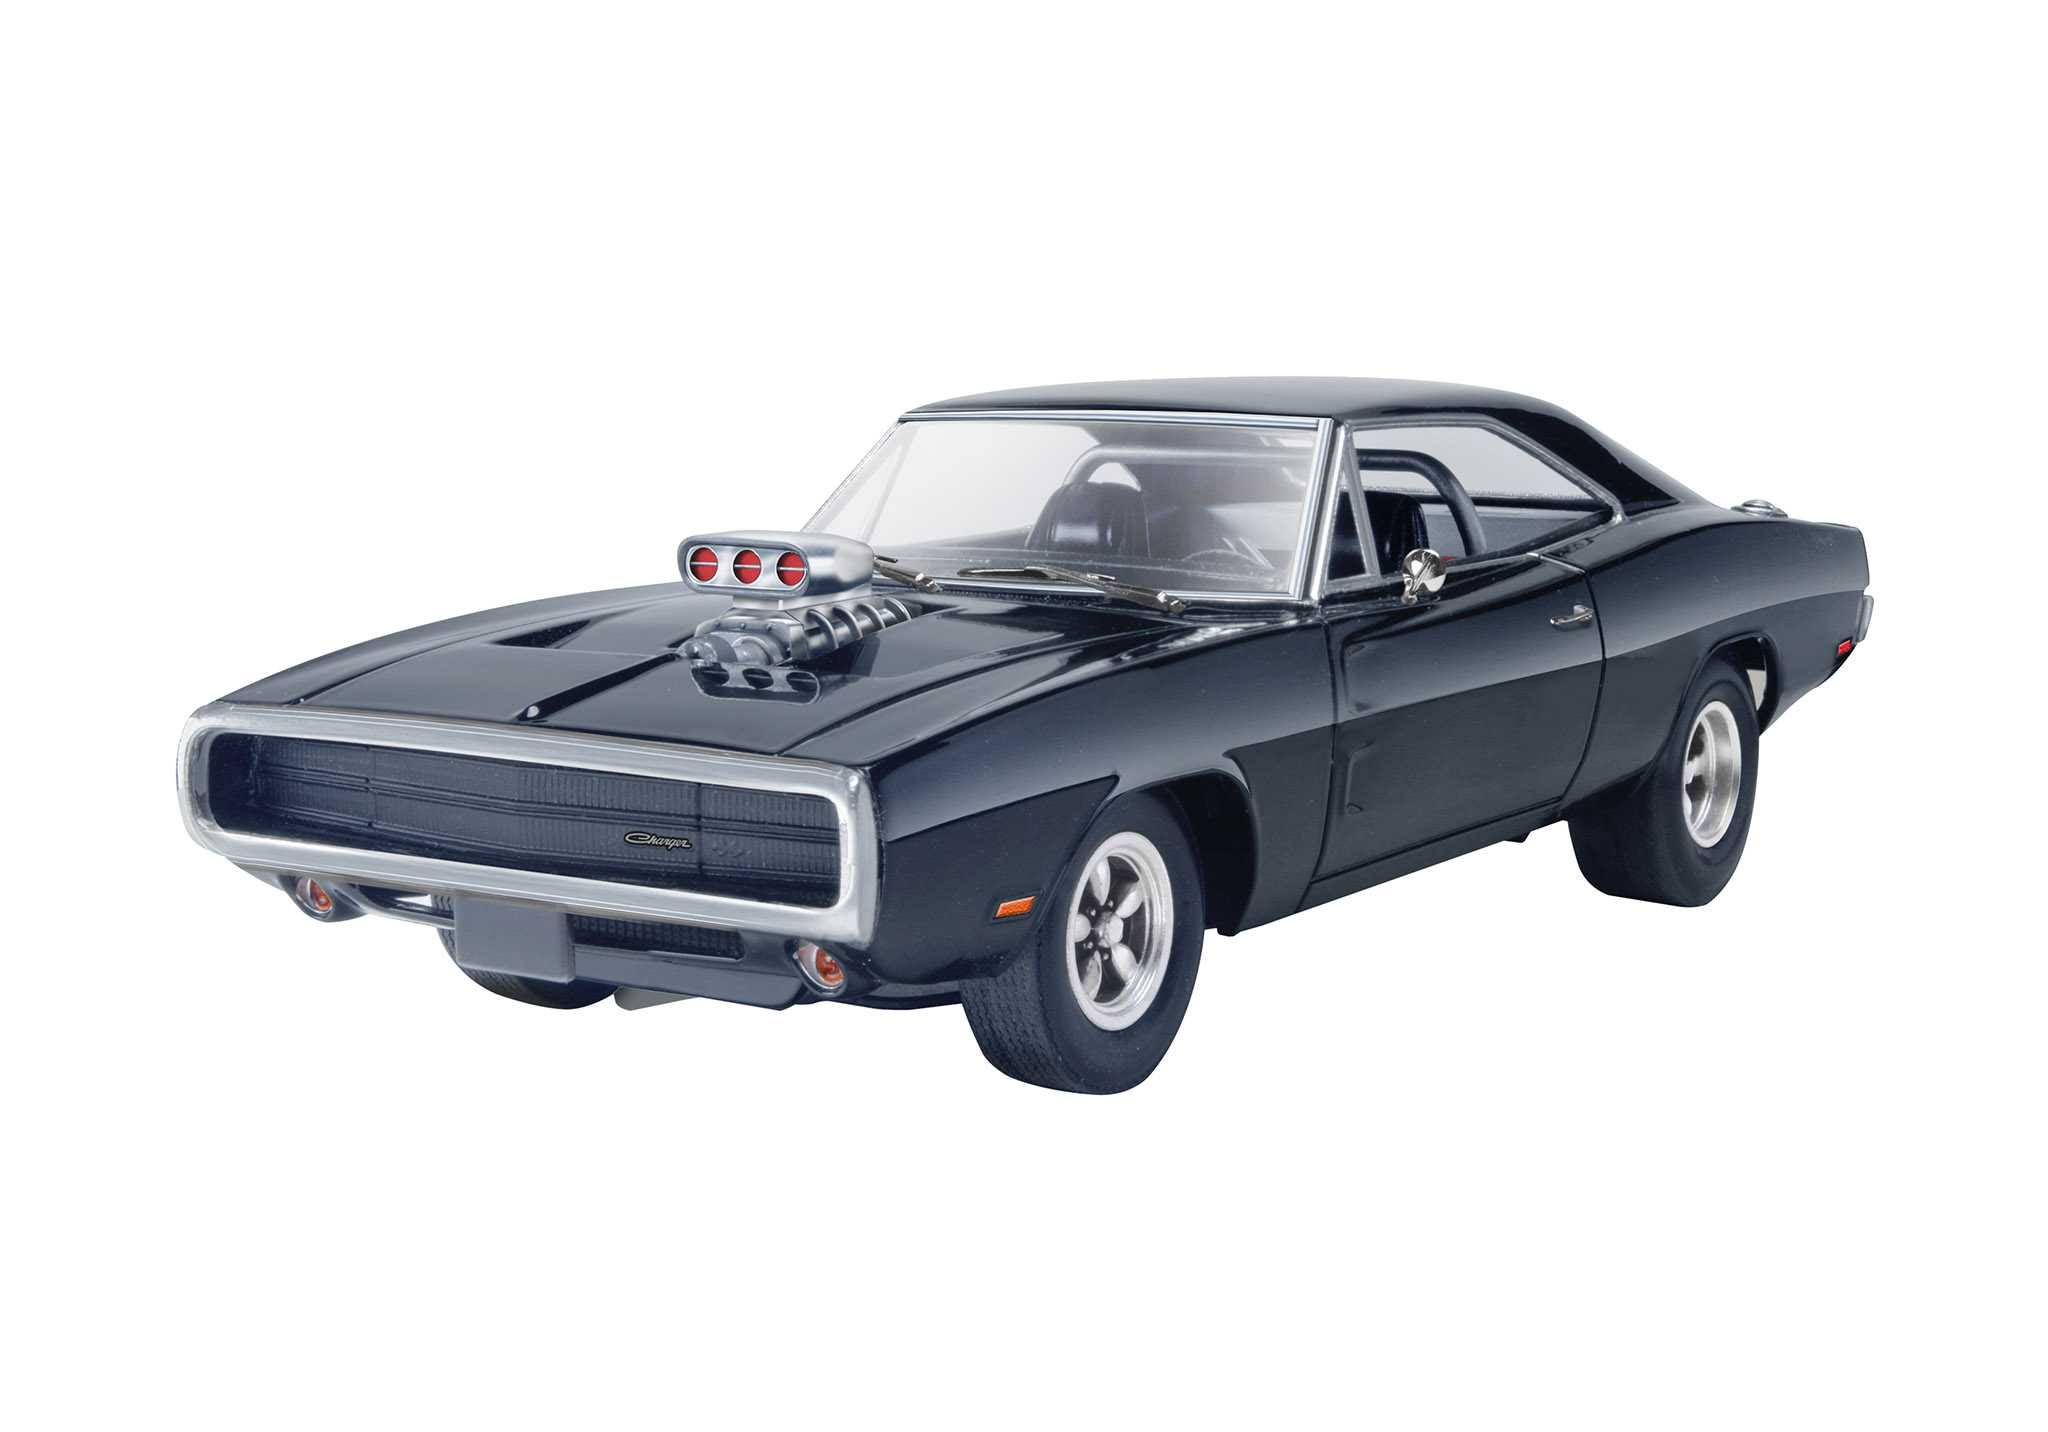 Revell Fast and Furious Dominics 1970 Dodge Charger Plastic Model Kit